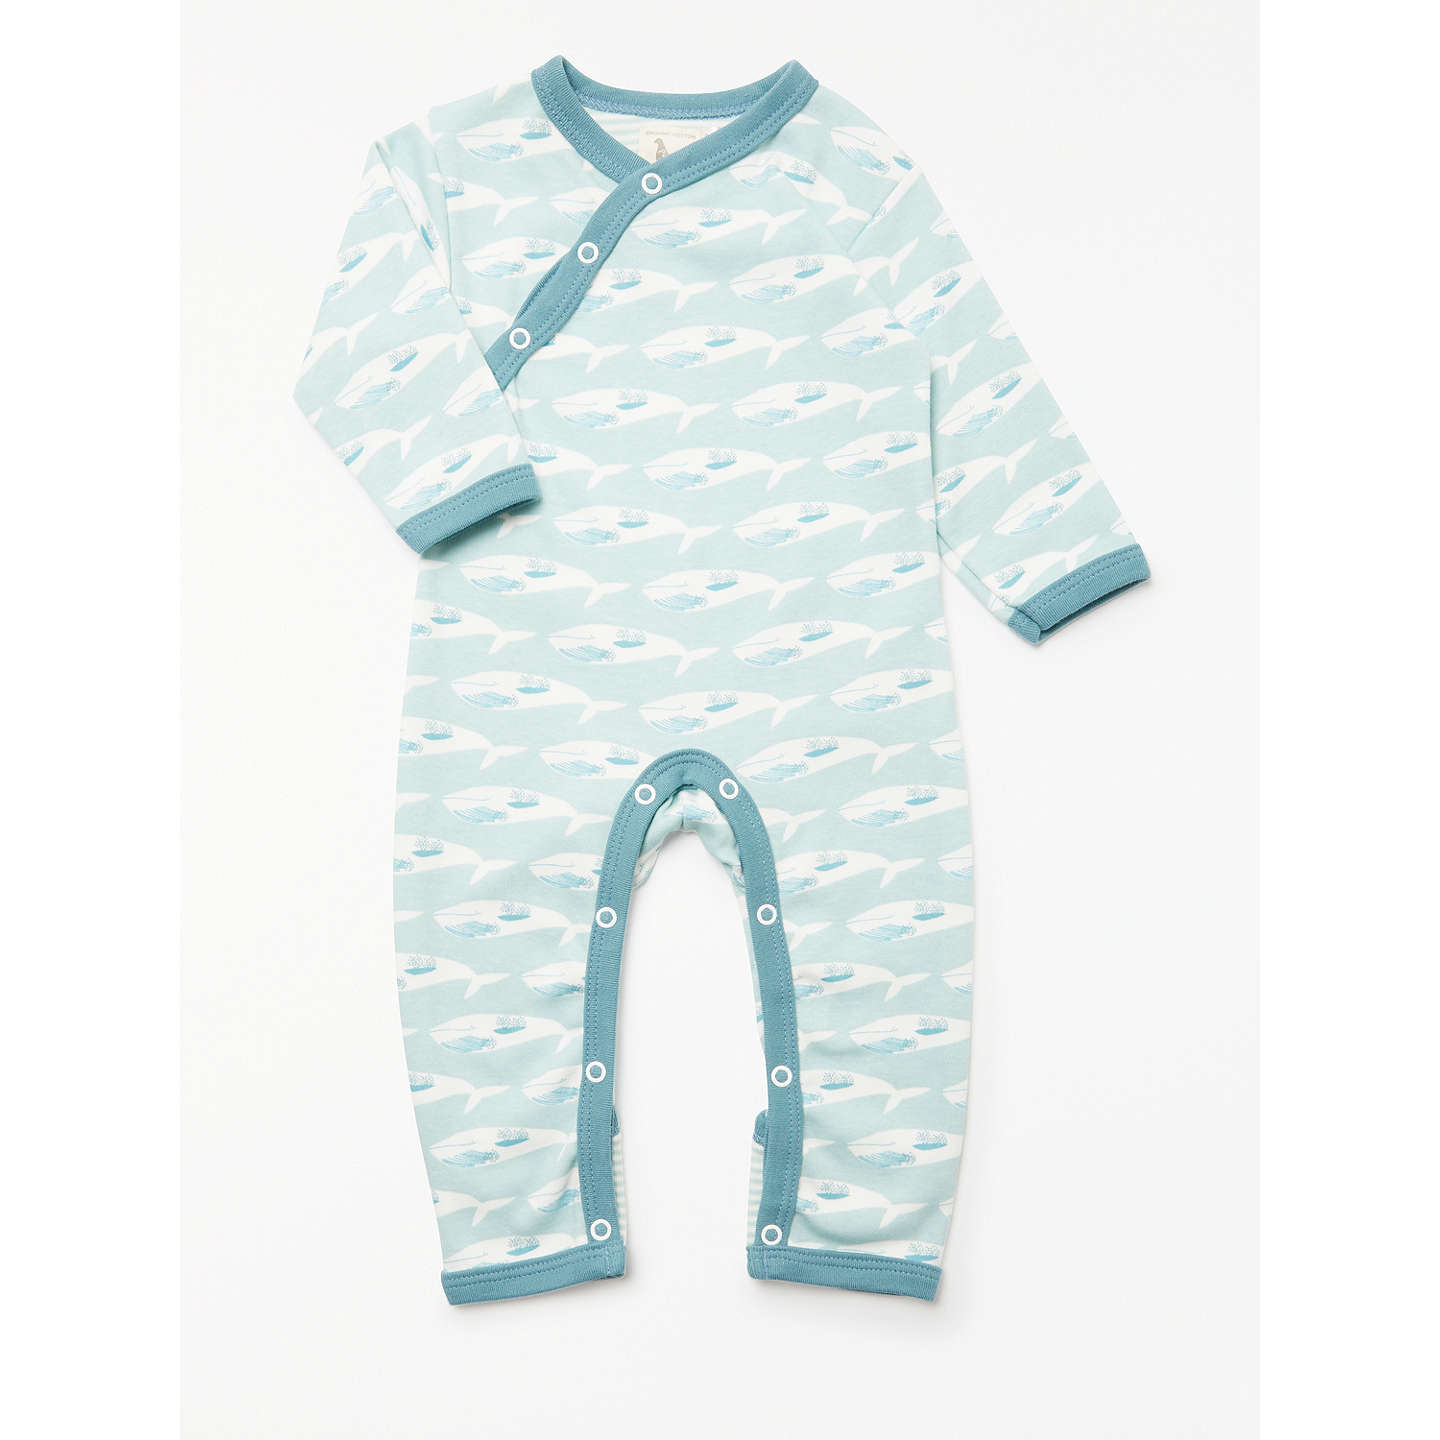 Pigeon Organics Baby Whale Long Sleeve Romper Blue At John Lewis